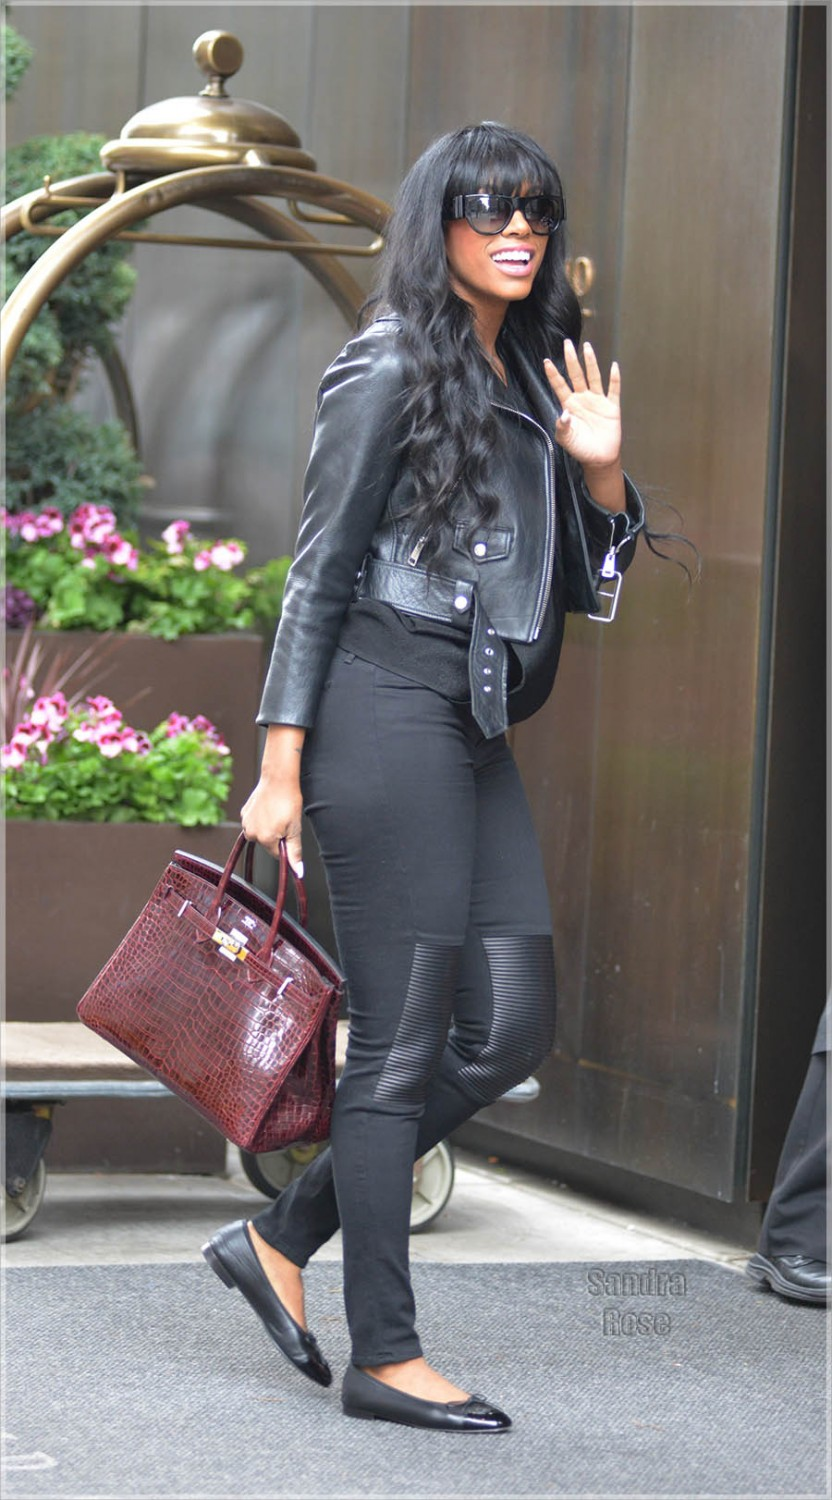 Celebs Out & About: Rita Ora,Taylor Swift, Porsha Williams Taylor Swift